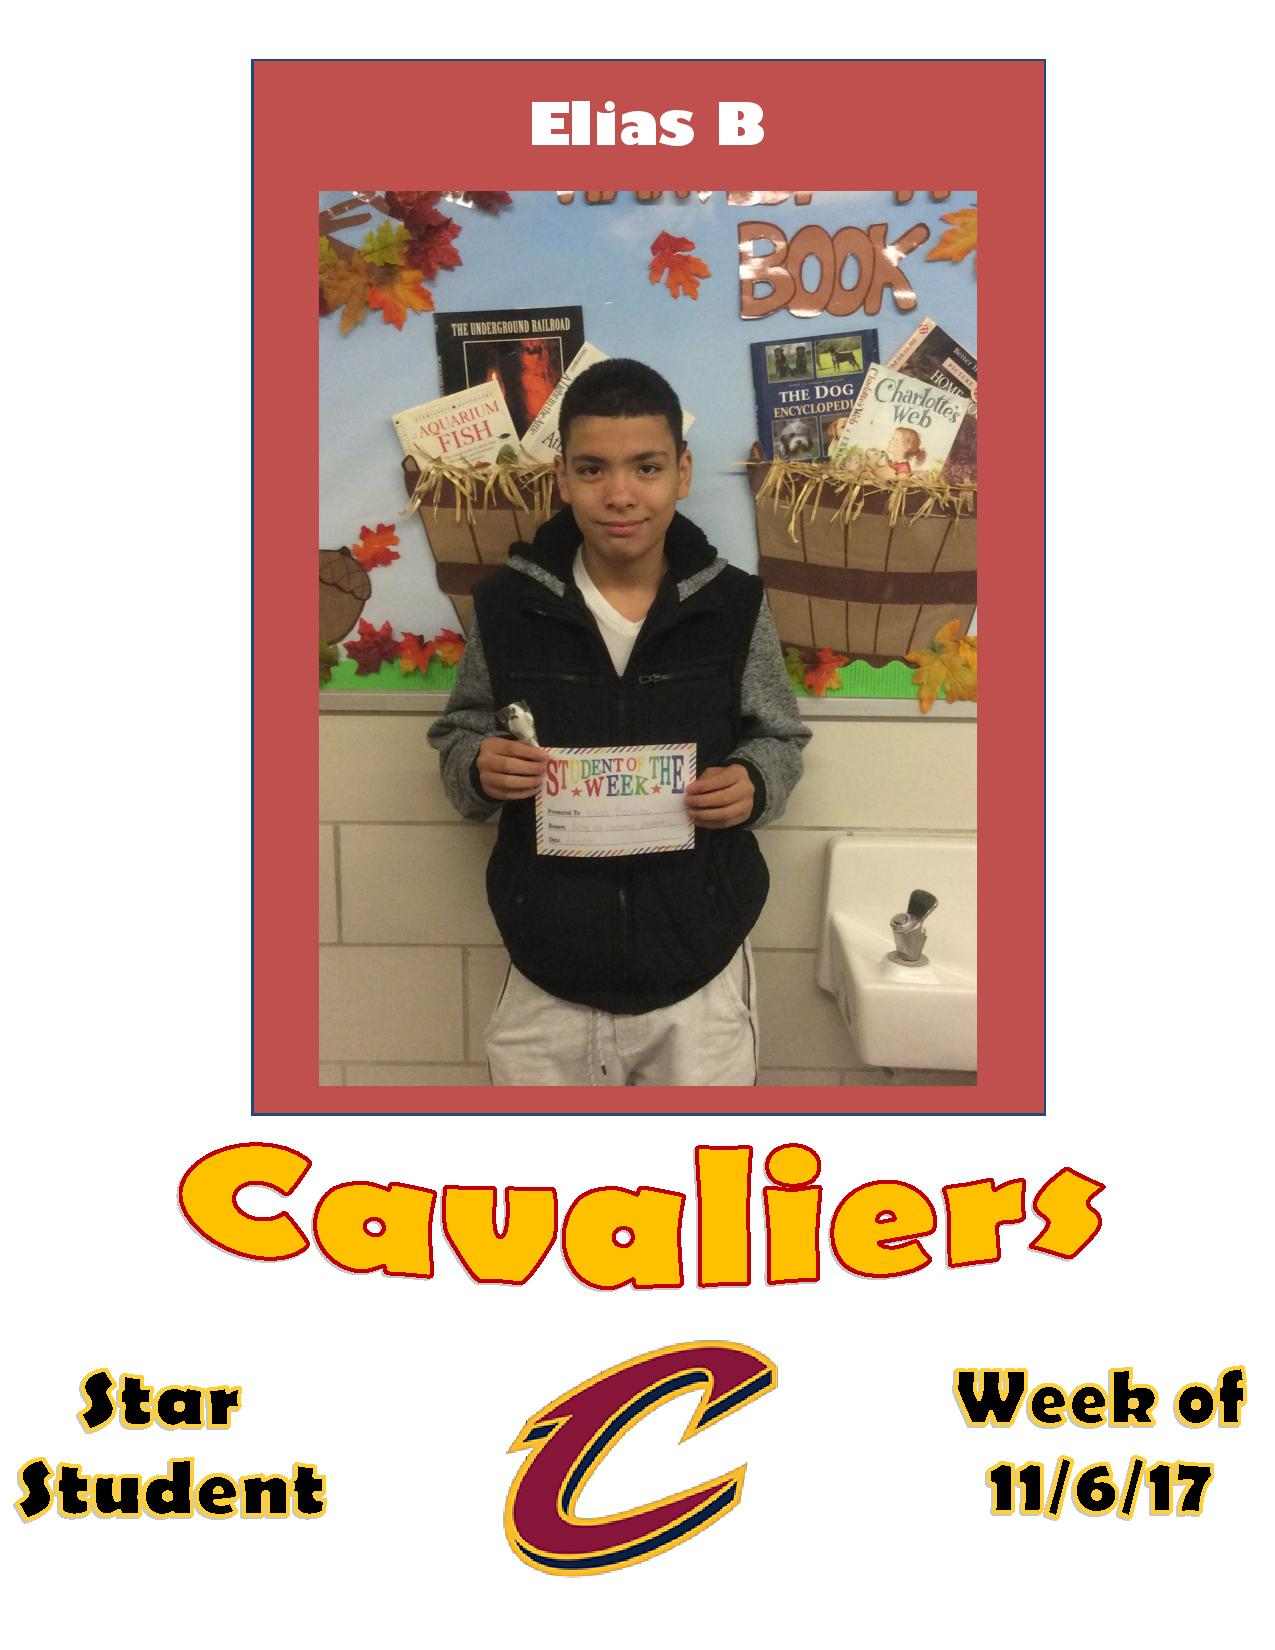 Elias B is the Cavaliers Star Student of the week